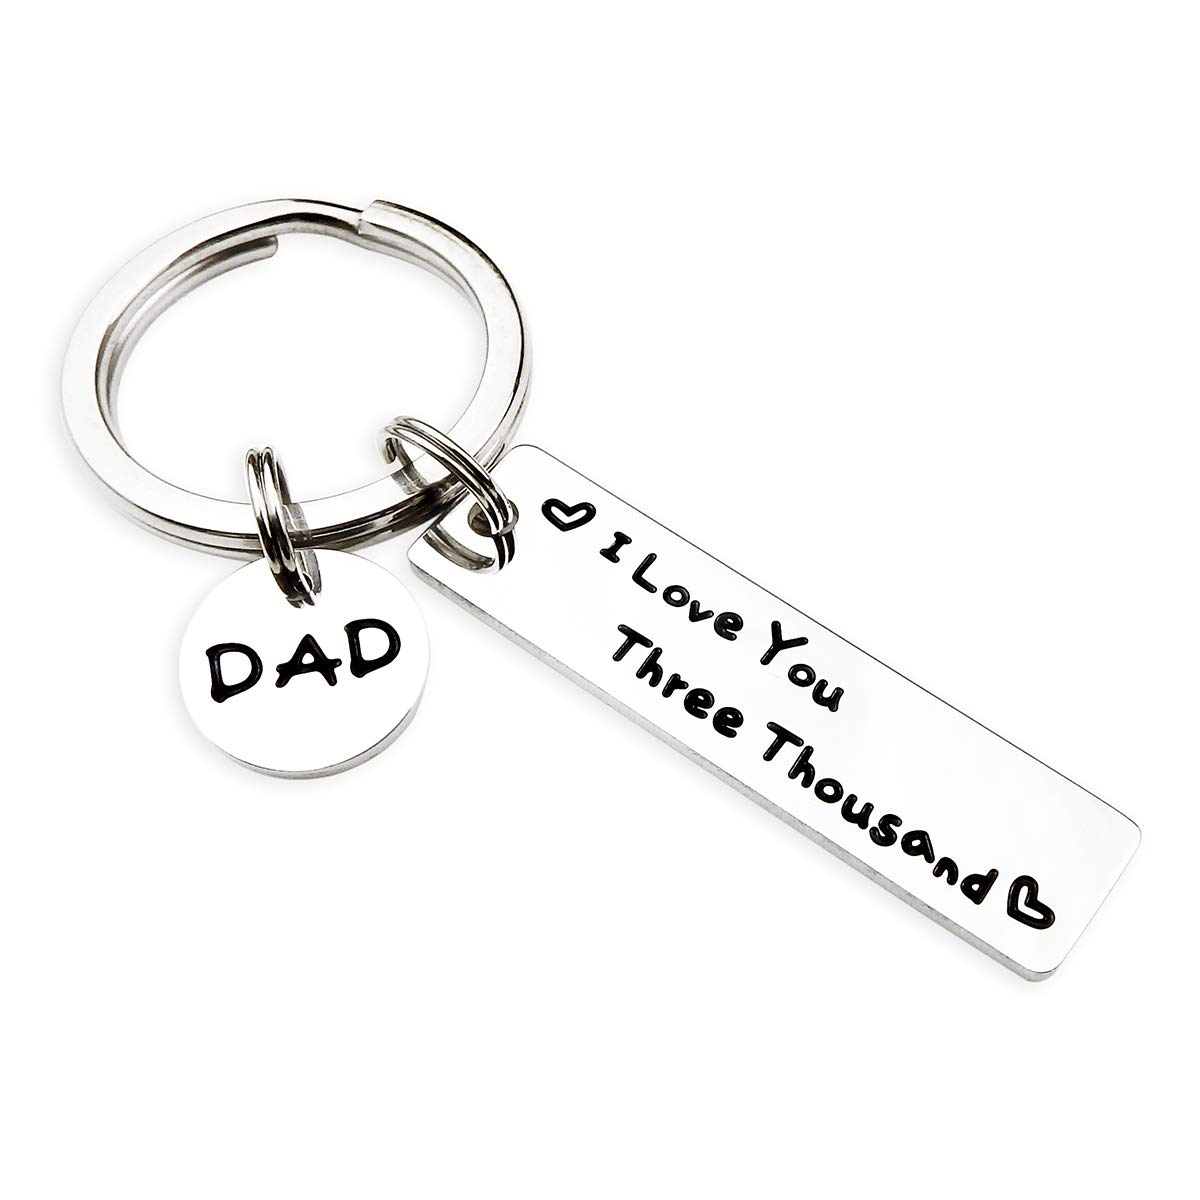 Dad Keychain Fathers Day Keychains I Love You Three Thousand from Daughter Son Gifts for Daddy Birthday Gifts